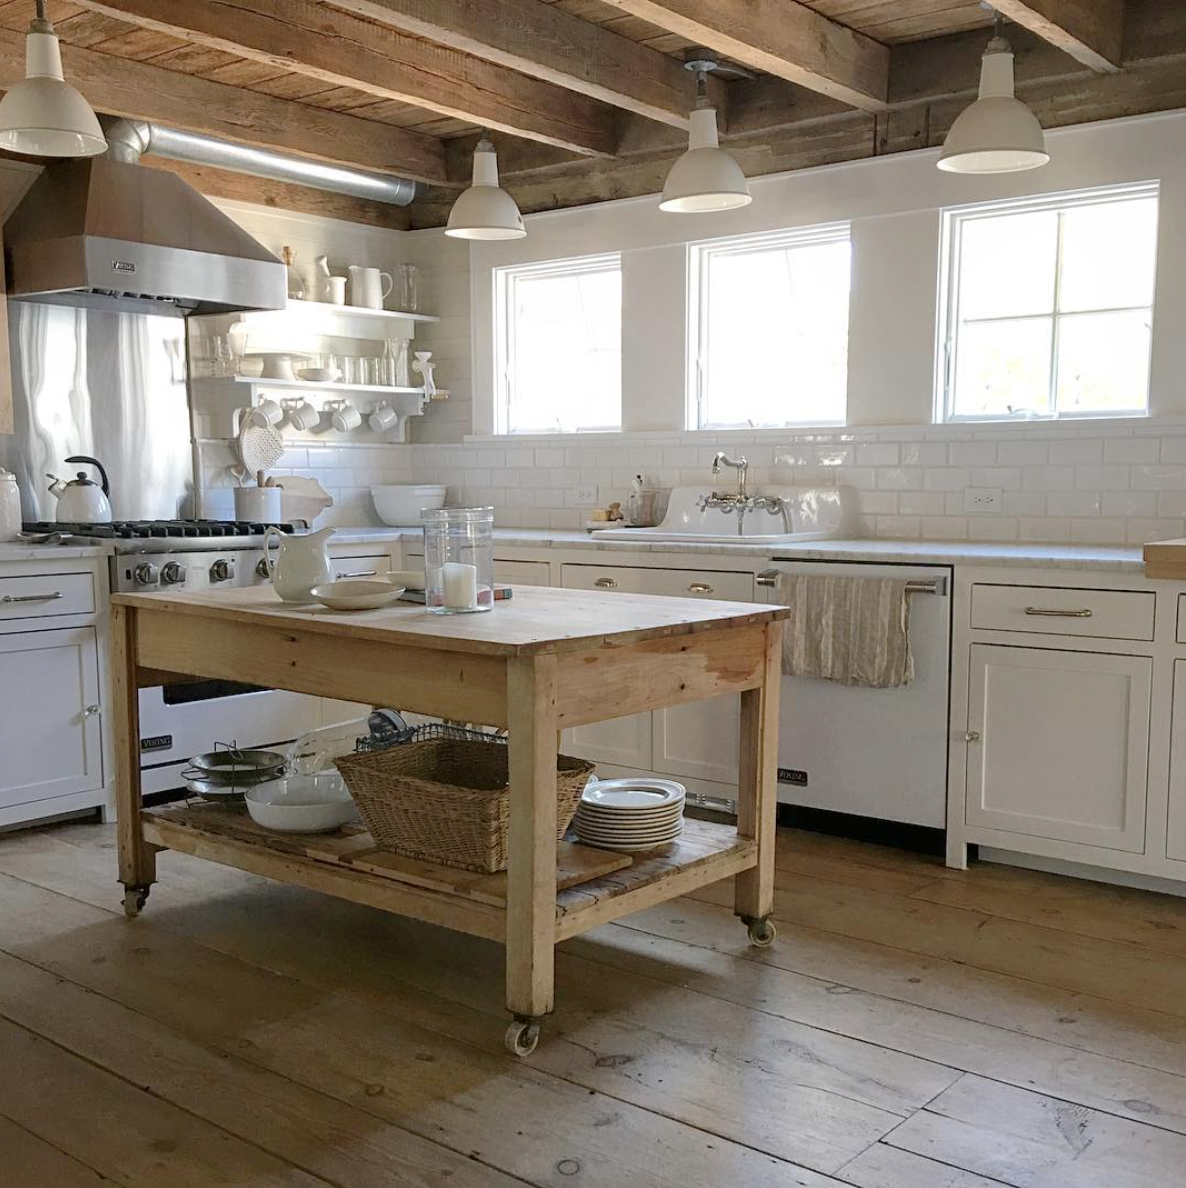 Learn Kitchen Design: Kitchens' Small Kitchen Design Guides Will Help You Make